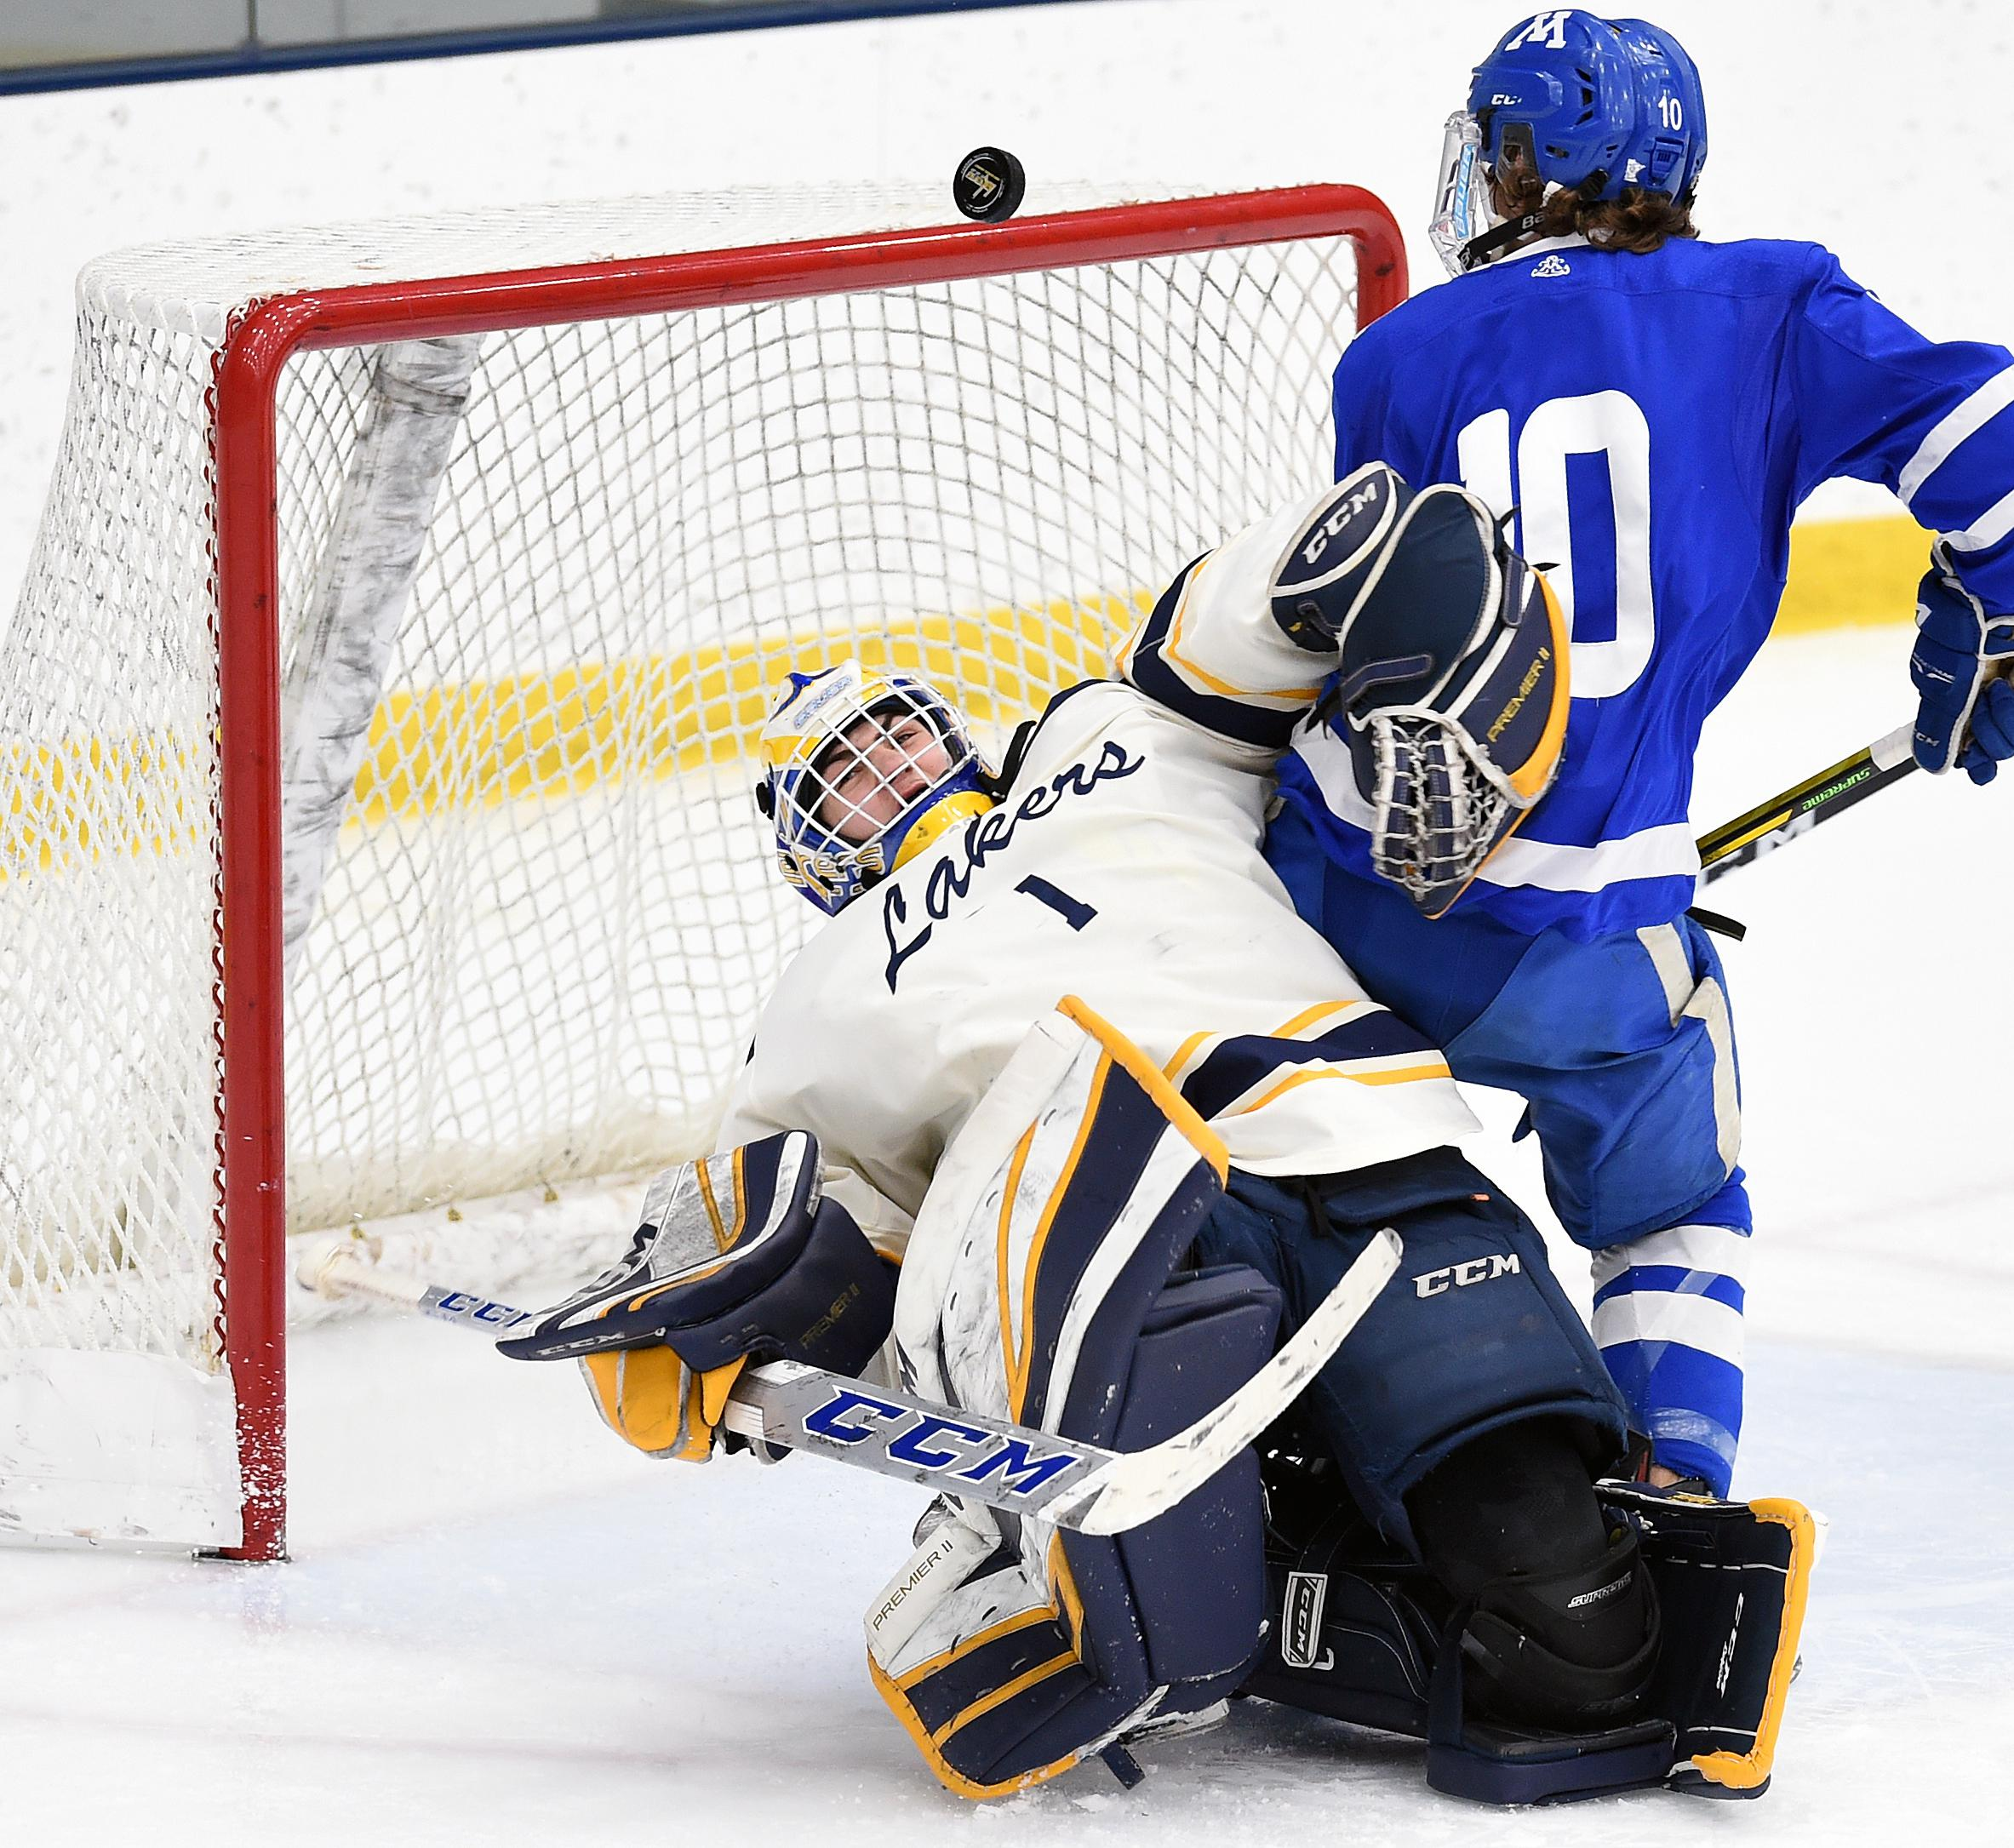 Minnetonka's Hunter Newhouse gets tangled with Prior Lake goaltender Trevor Boschee as the puck drops into the net for a third-period goal. The Skippers defeated the Lakers 3-1 on Saturday. Photo by Loren Nelson, SportsEngine